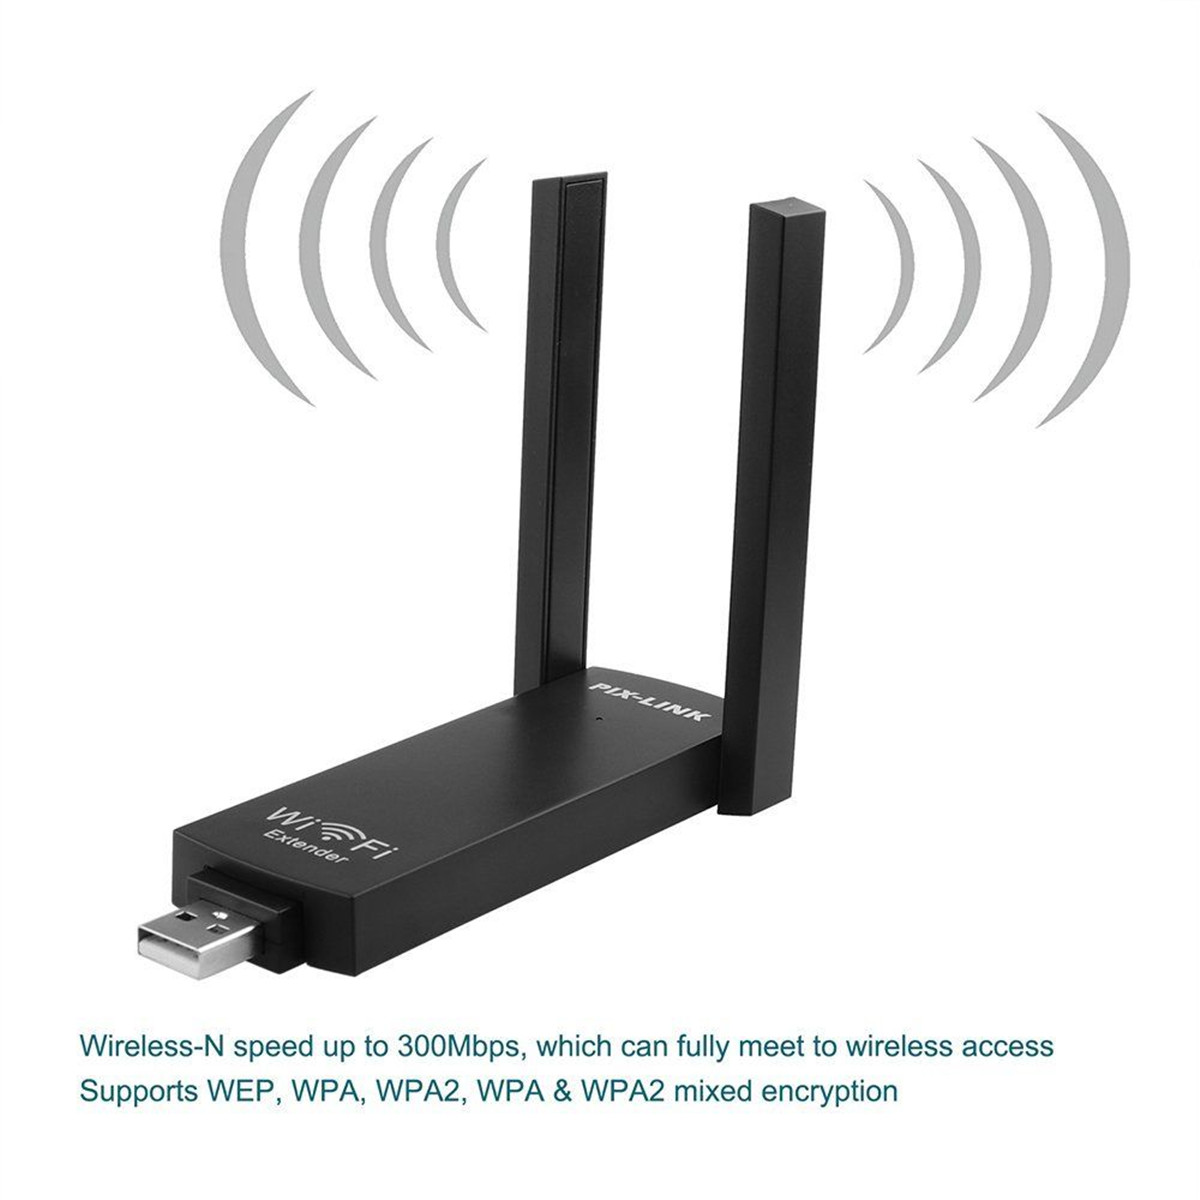 PIX-LINK 300Mbps USB Wireless WiFi Amplifier Repeater Extender